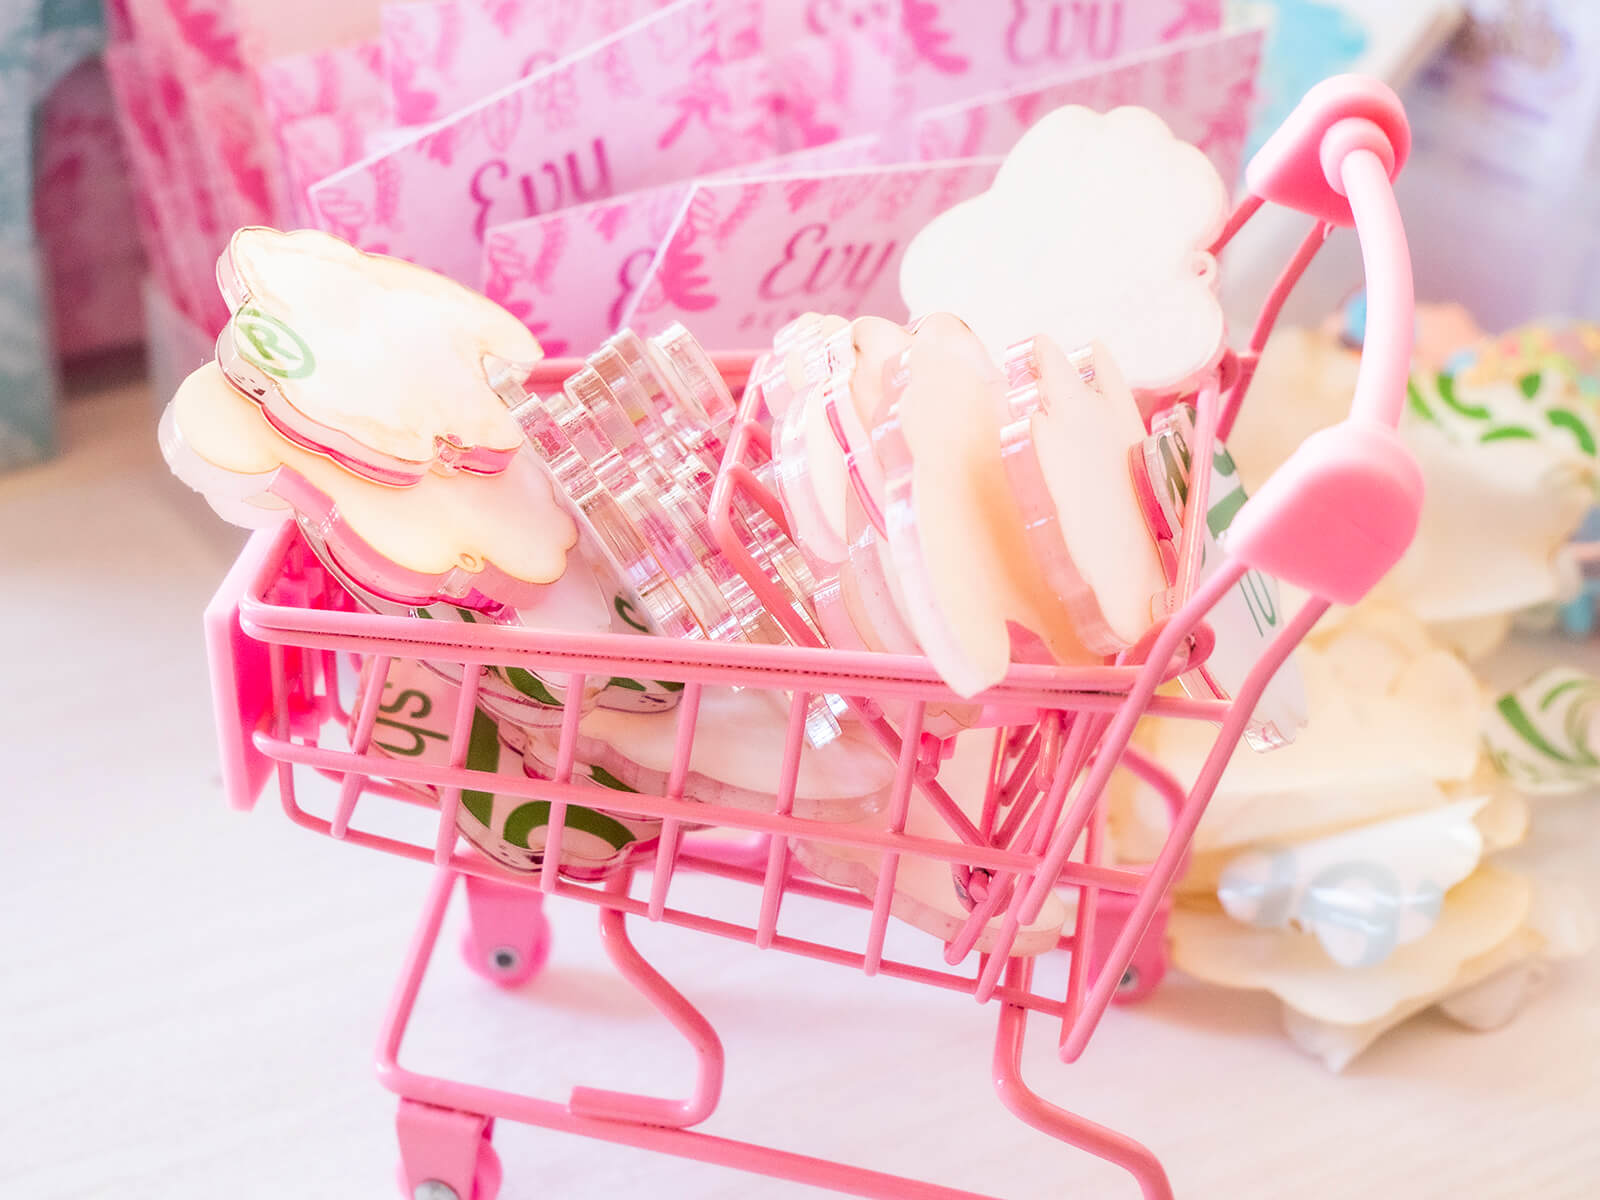 A miniature shopping cart filled with unpeeled charms. Unpeeled charms have a layer of paper or plastic over them, which then has to be peeled in order to reveal the design.